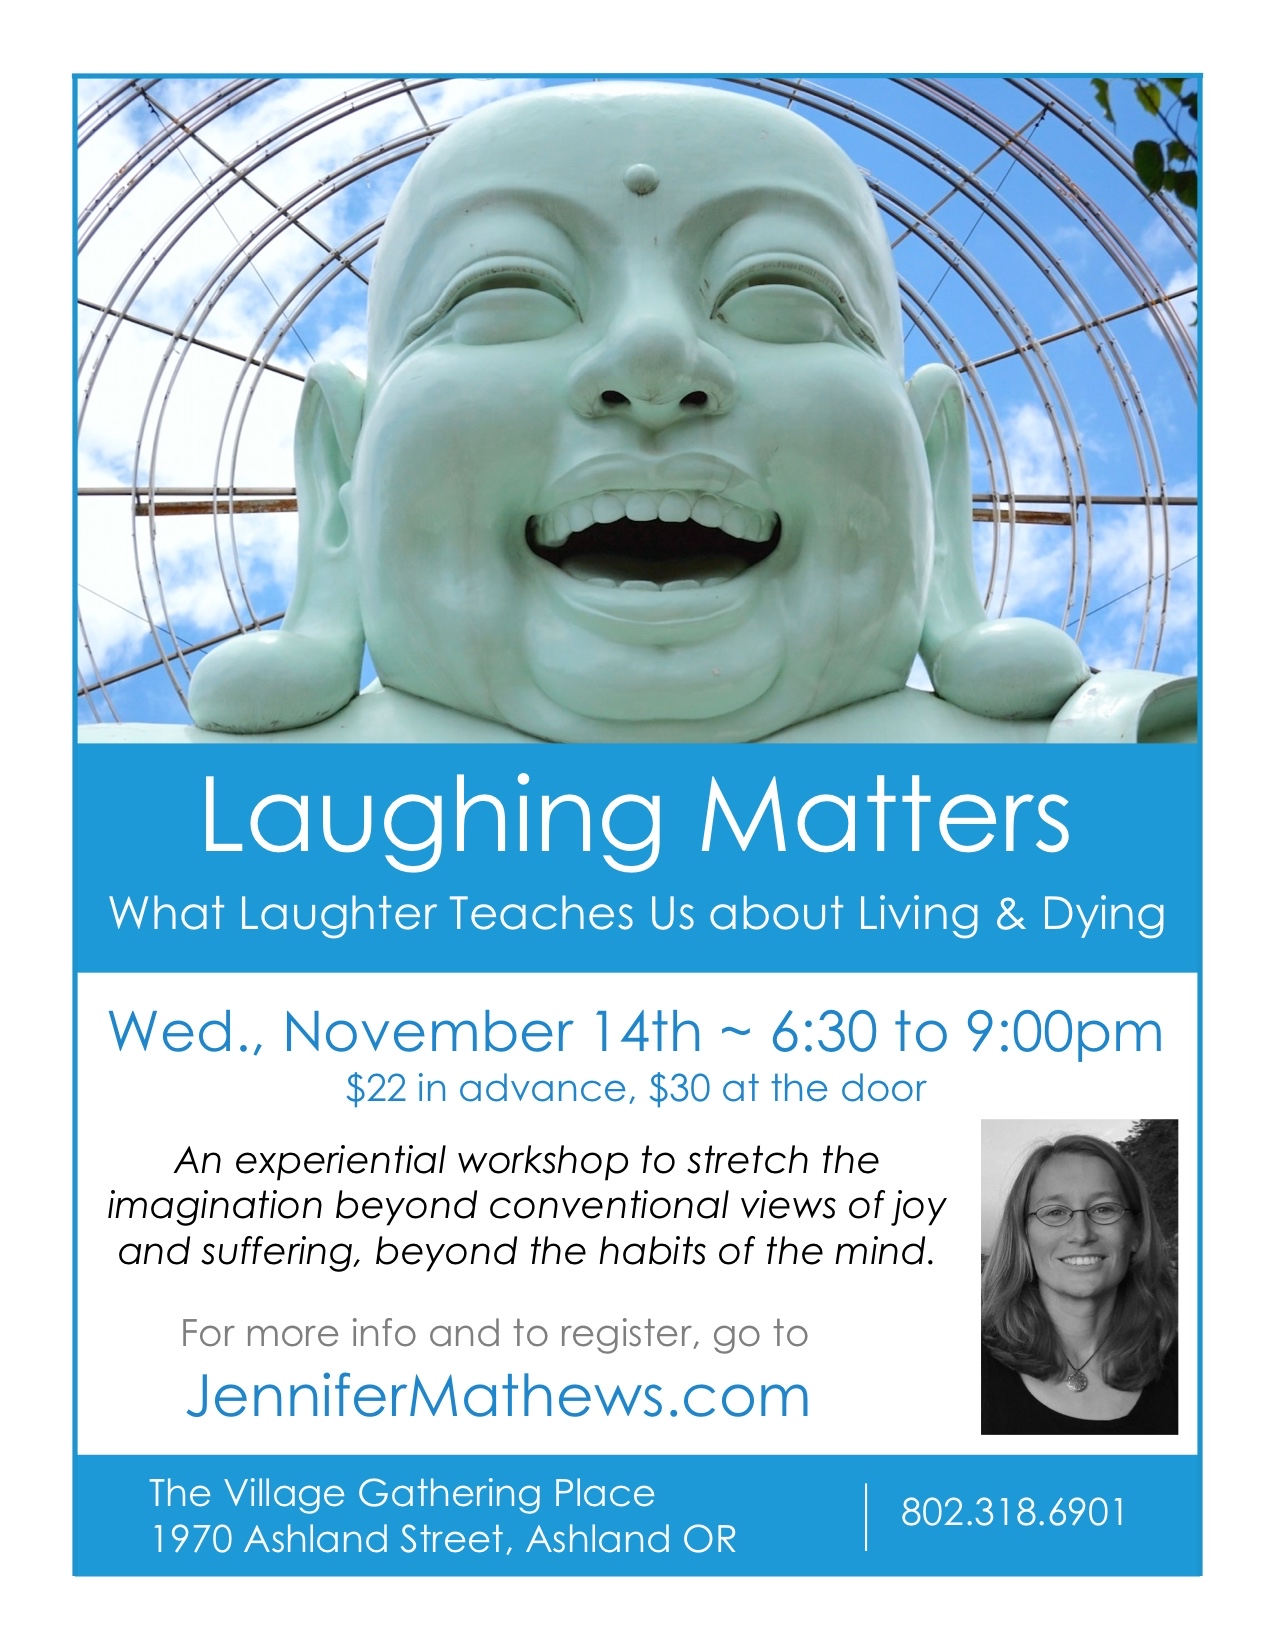 Laughing Matters Ashland fall 2018 FINAL